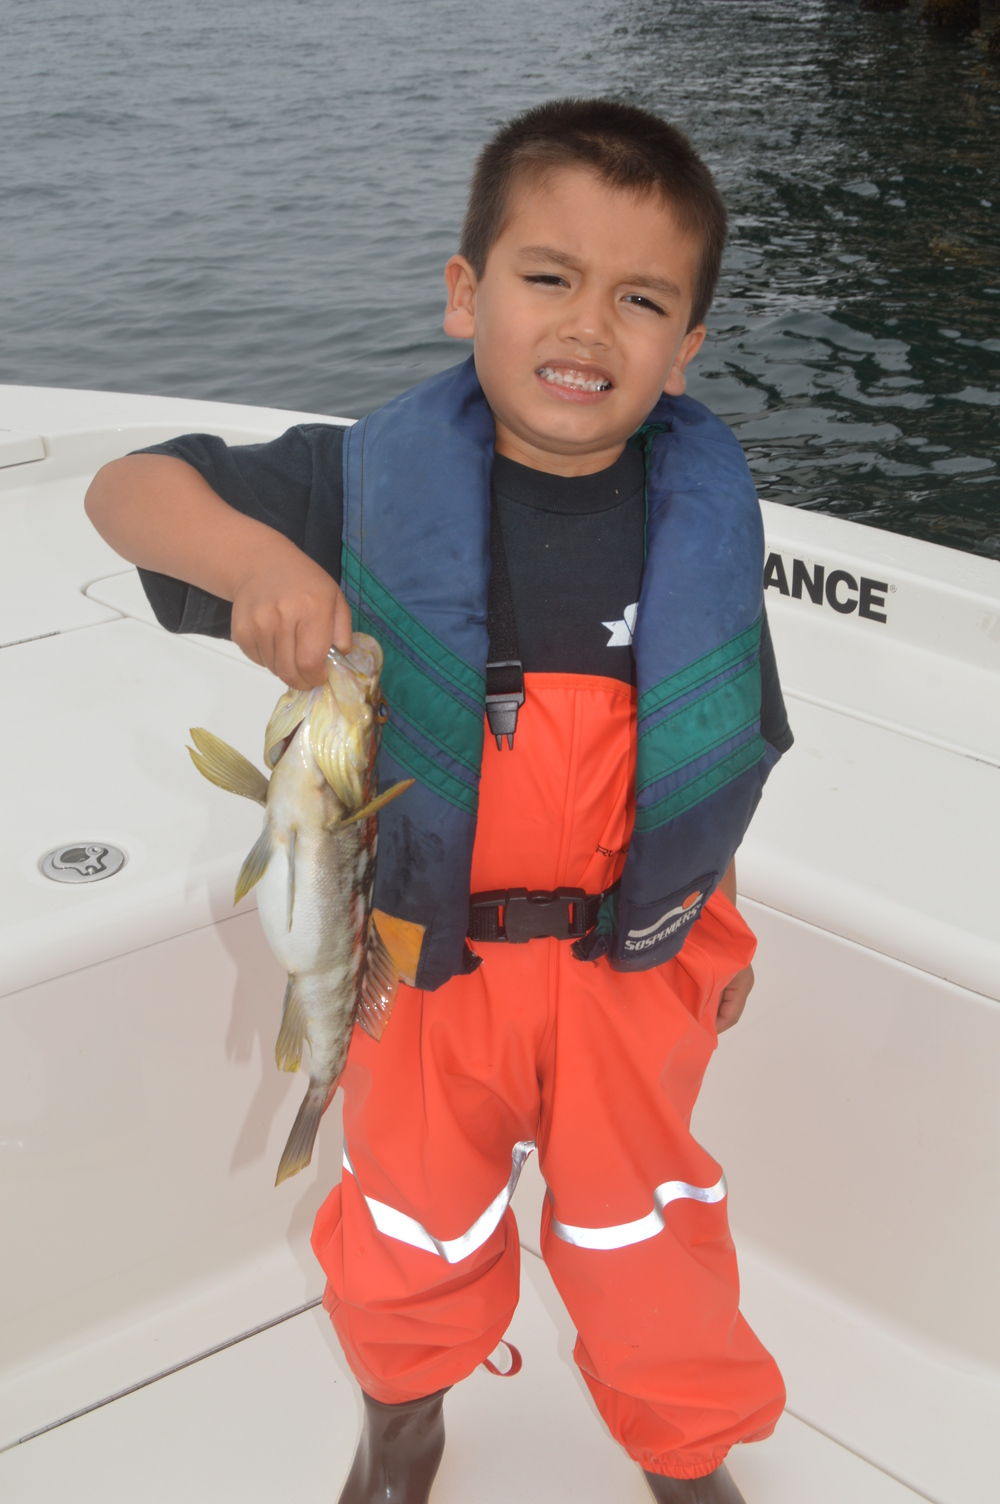 . . . and Cayden's first Calico Bass!